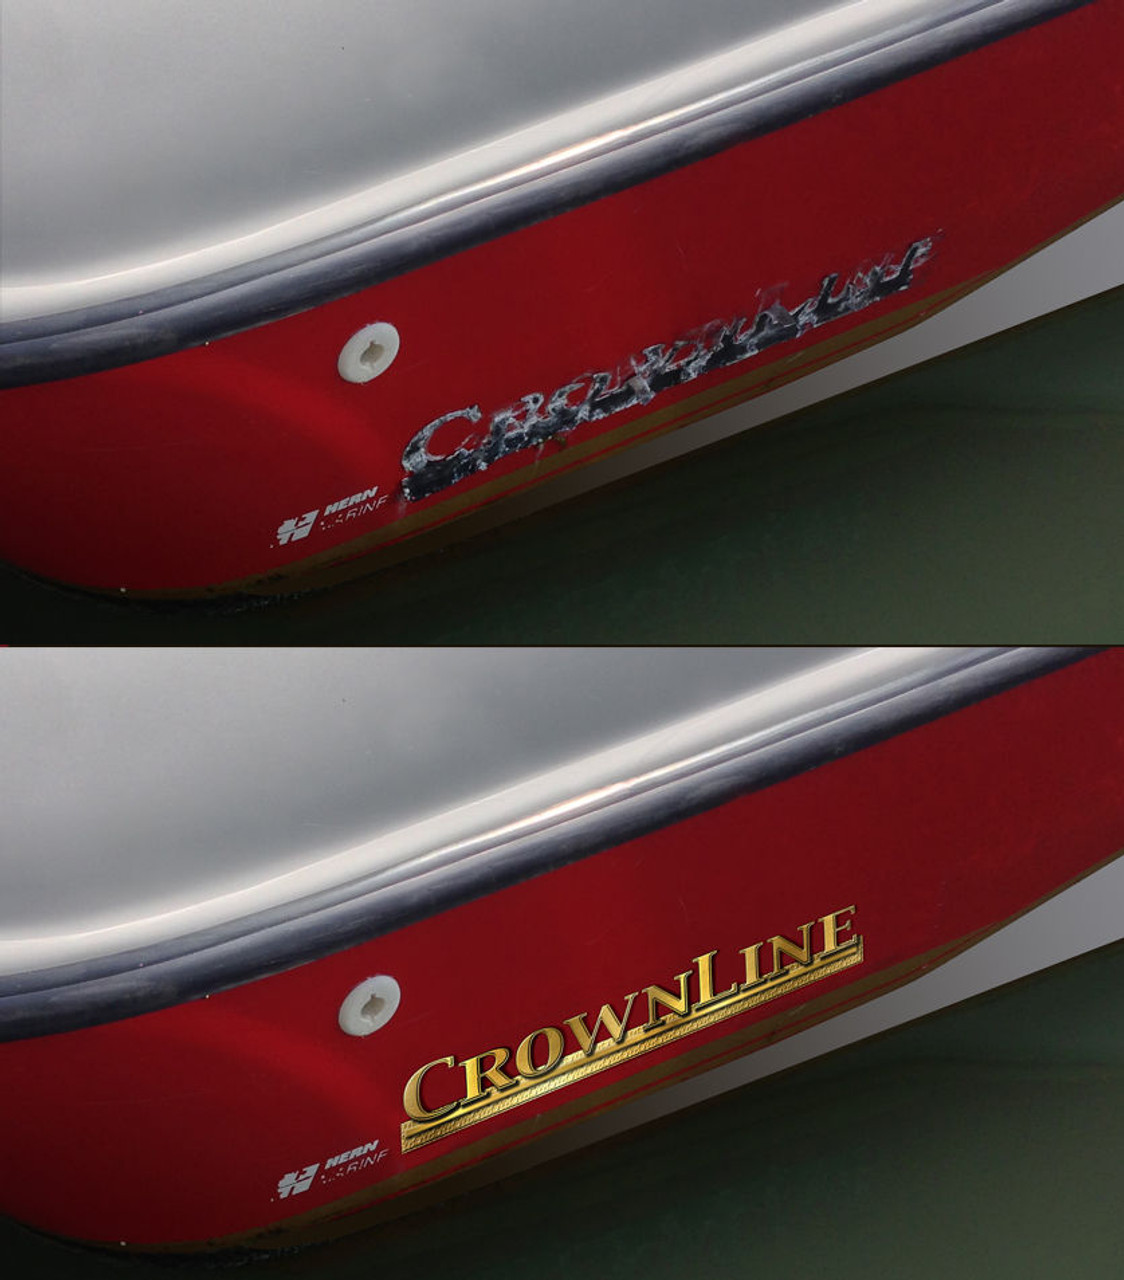 """Two 20"""" CrownLine Boat Plastic Decals"""